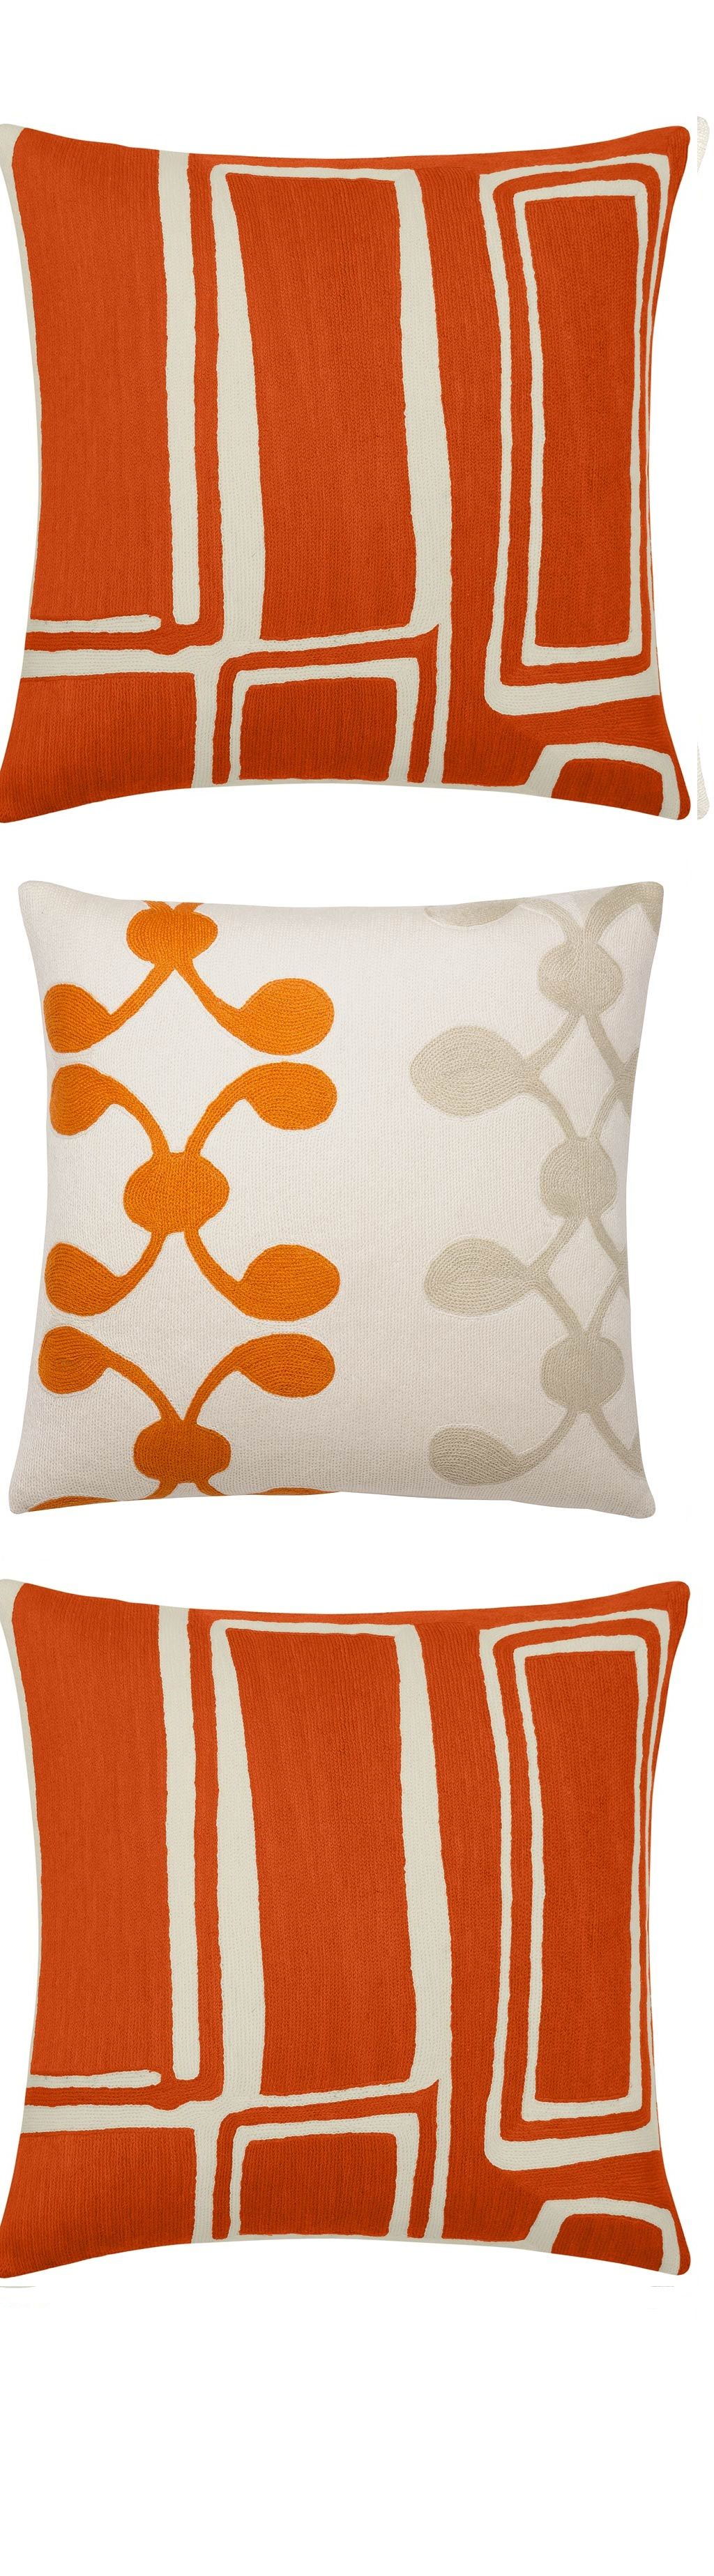 pillows unique rosie quotfall of design bouqet brown bouqetquot yellow throw beautiful fall toss pillow orange best